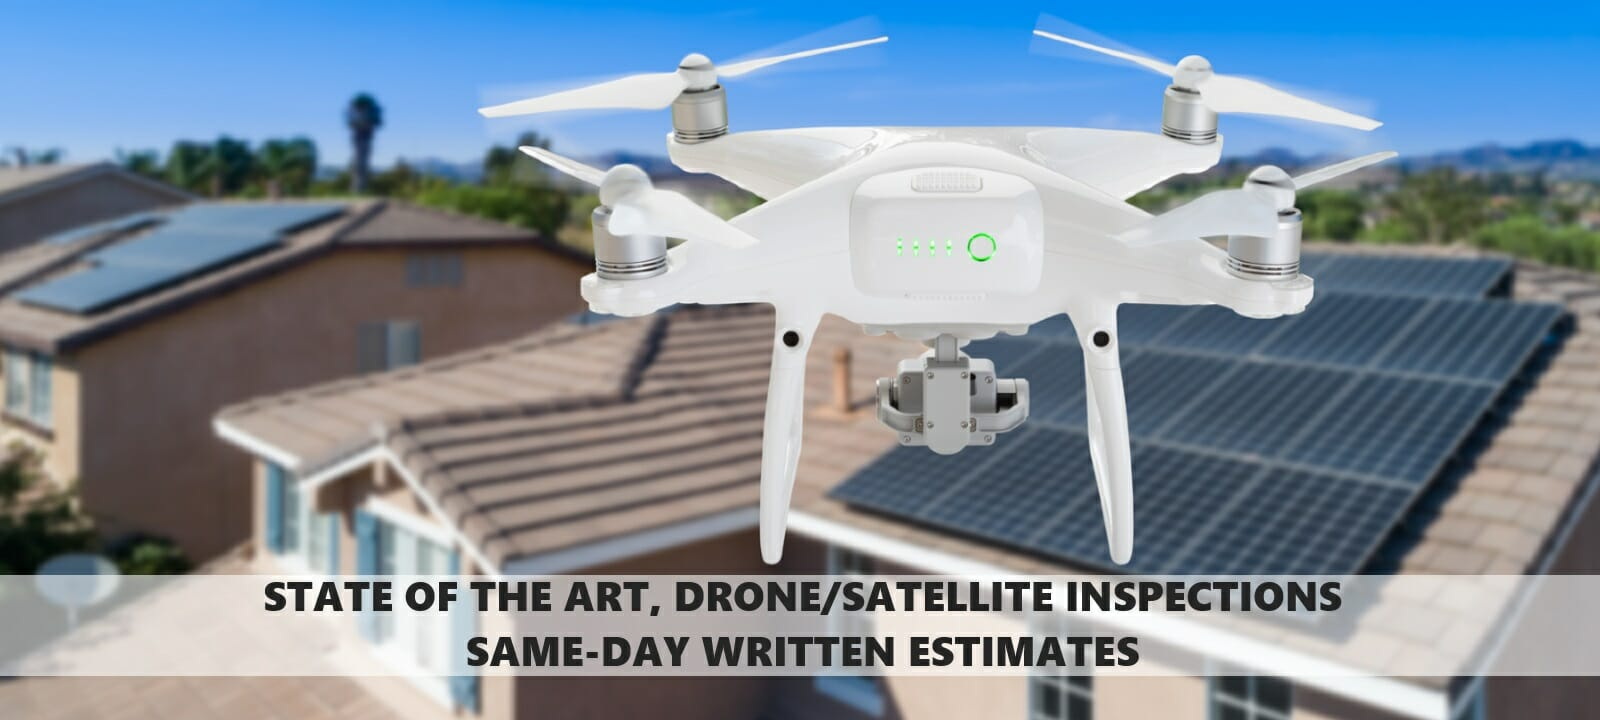 House-Roof-Drone-Inspection-LARGE-IMAGE